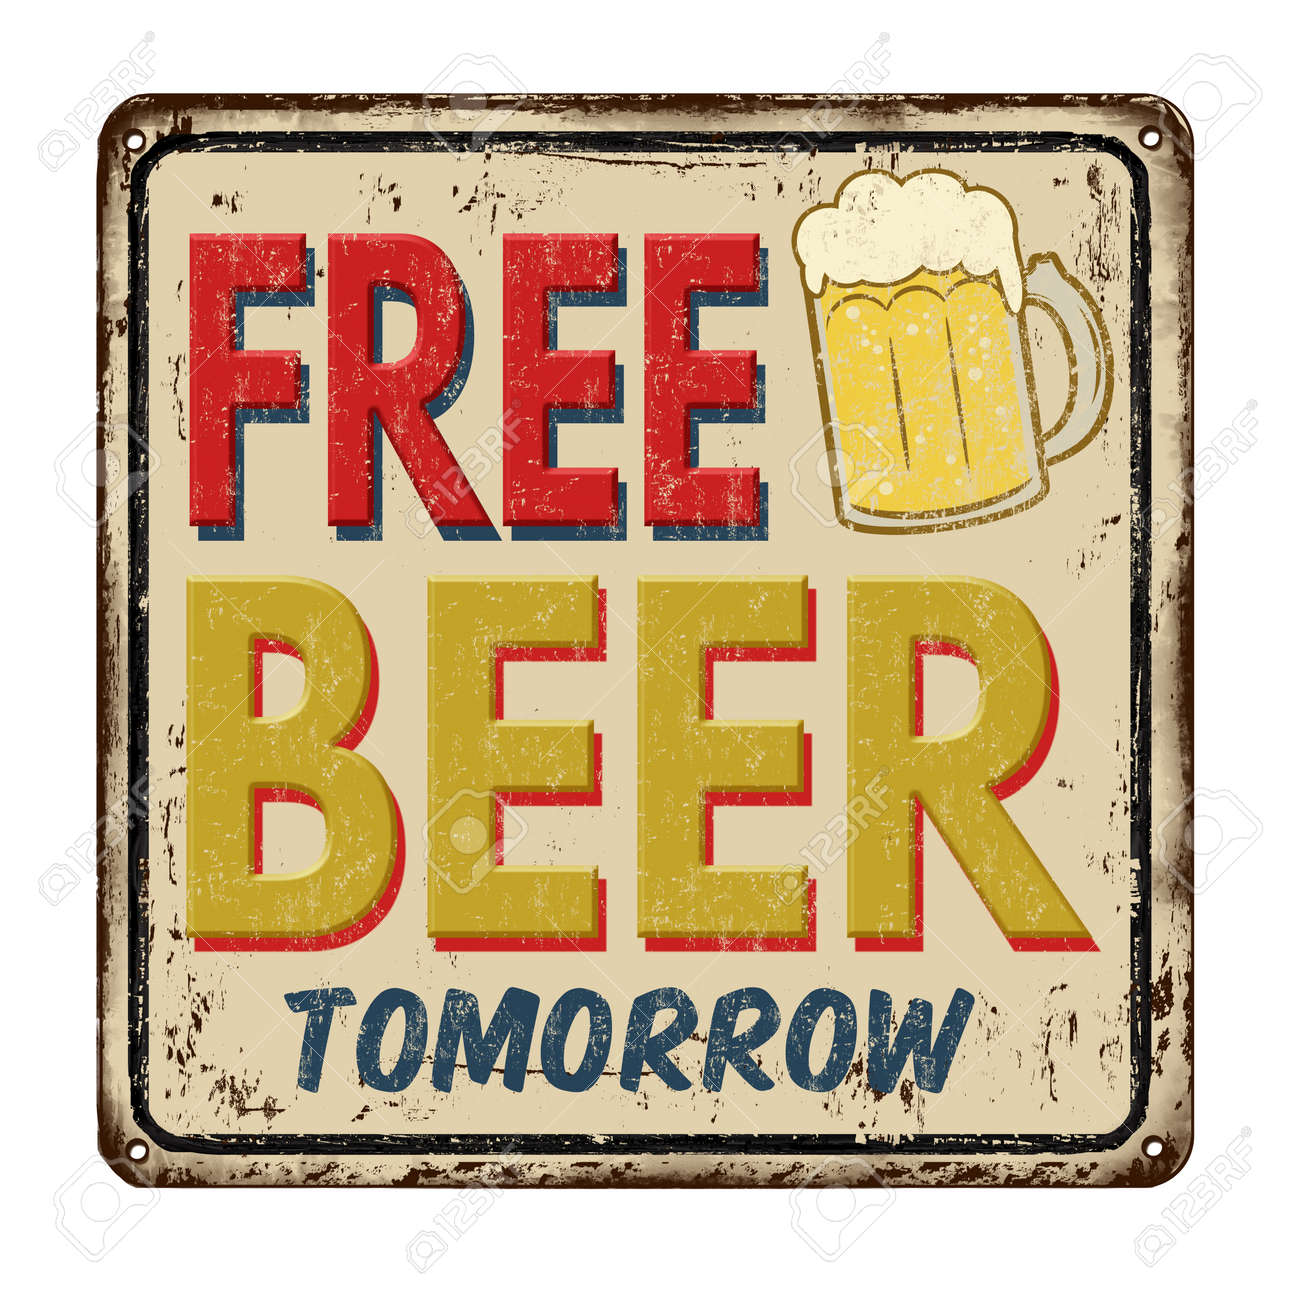 Free Beer Tomorrow Vintage Rusty Metal Sign On A White Background Royalty Free Cliparts Vectors And Stock Illustration Image 55212861